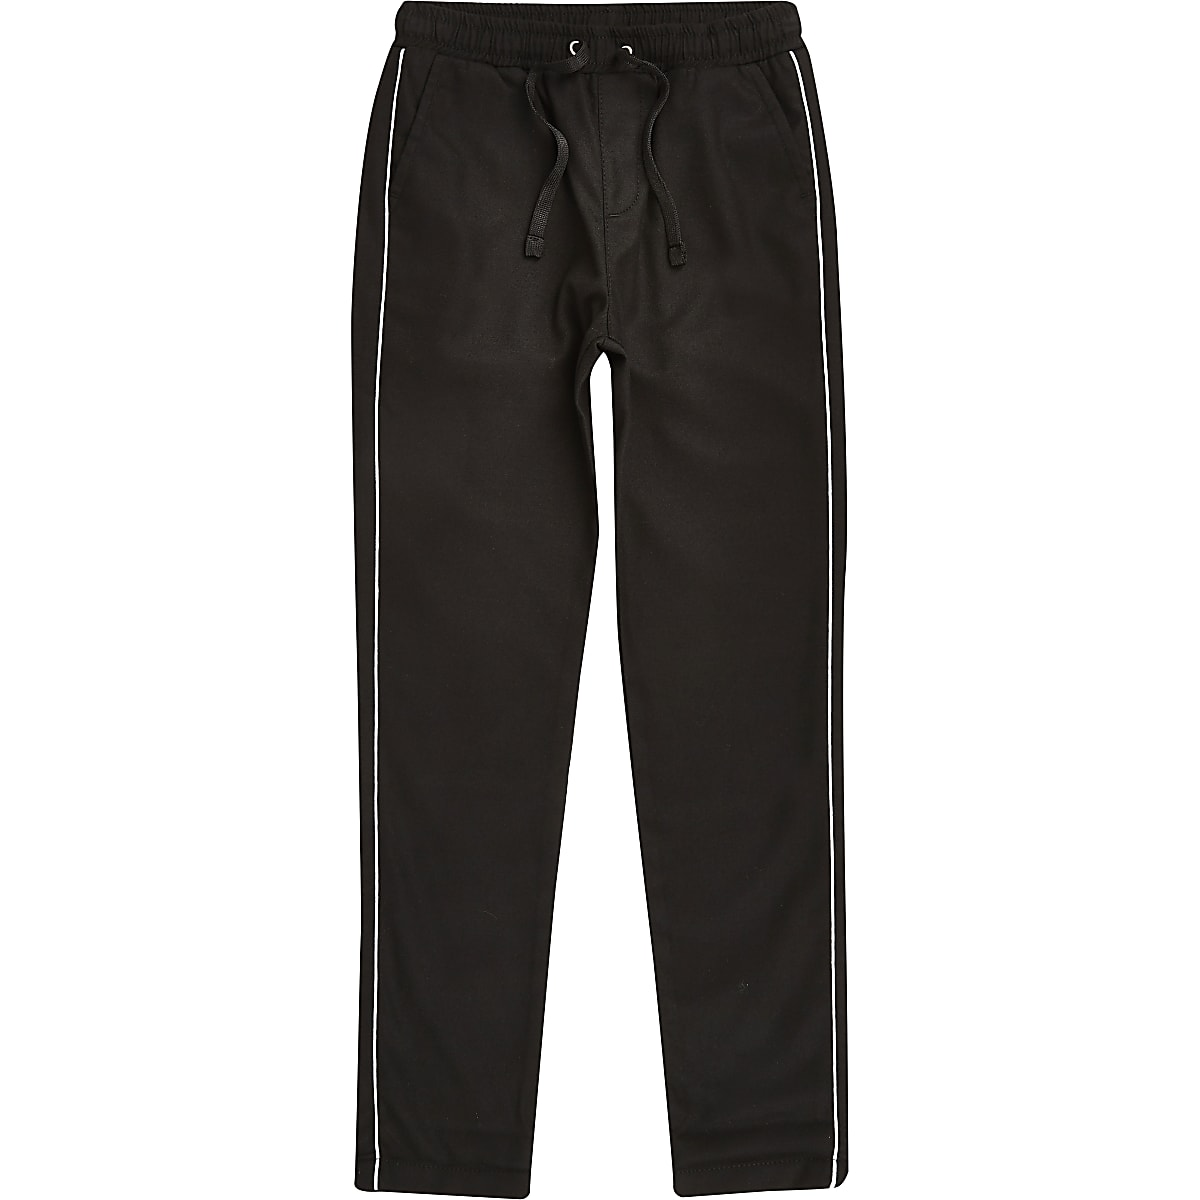 Boys black piped smart trousers